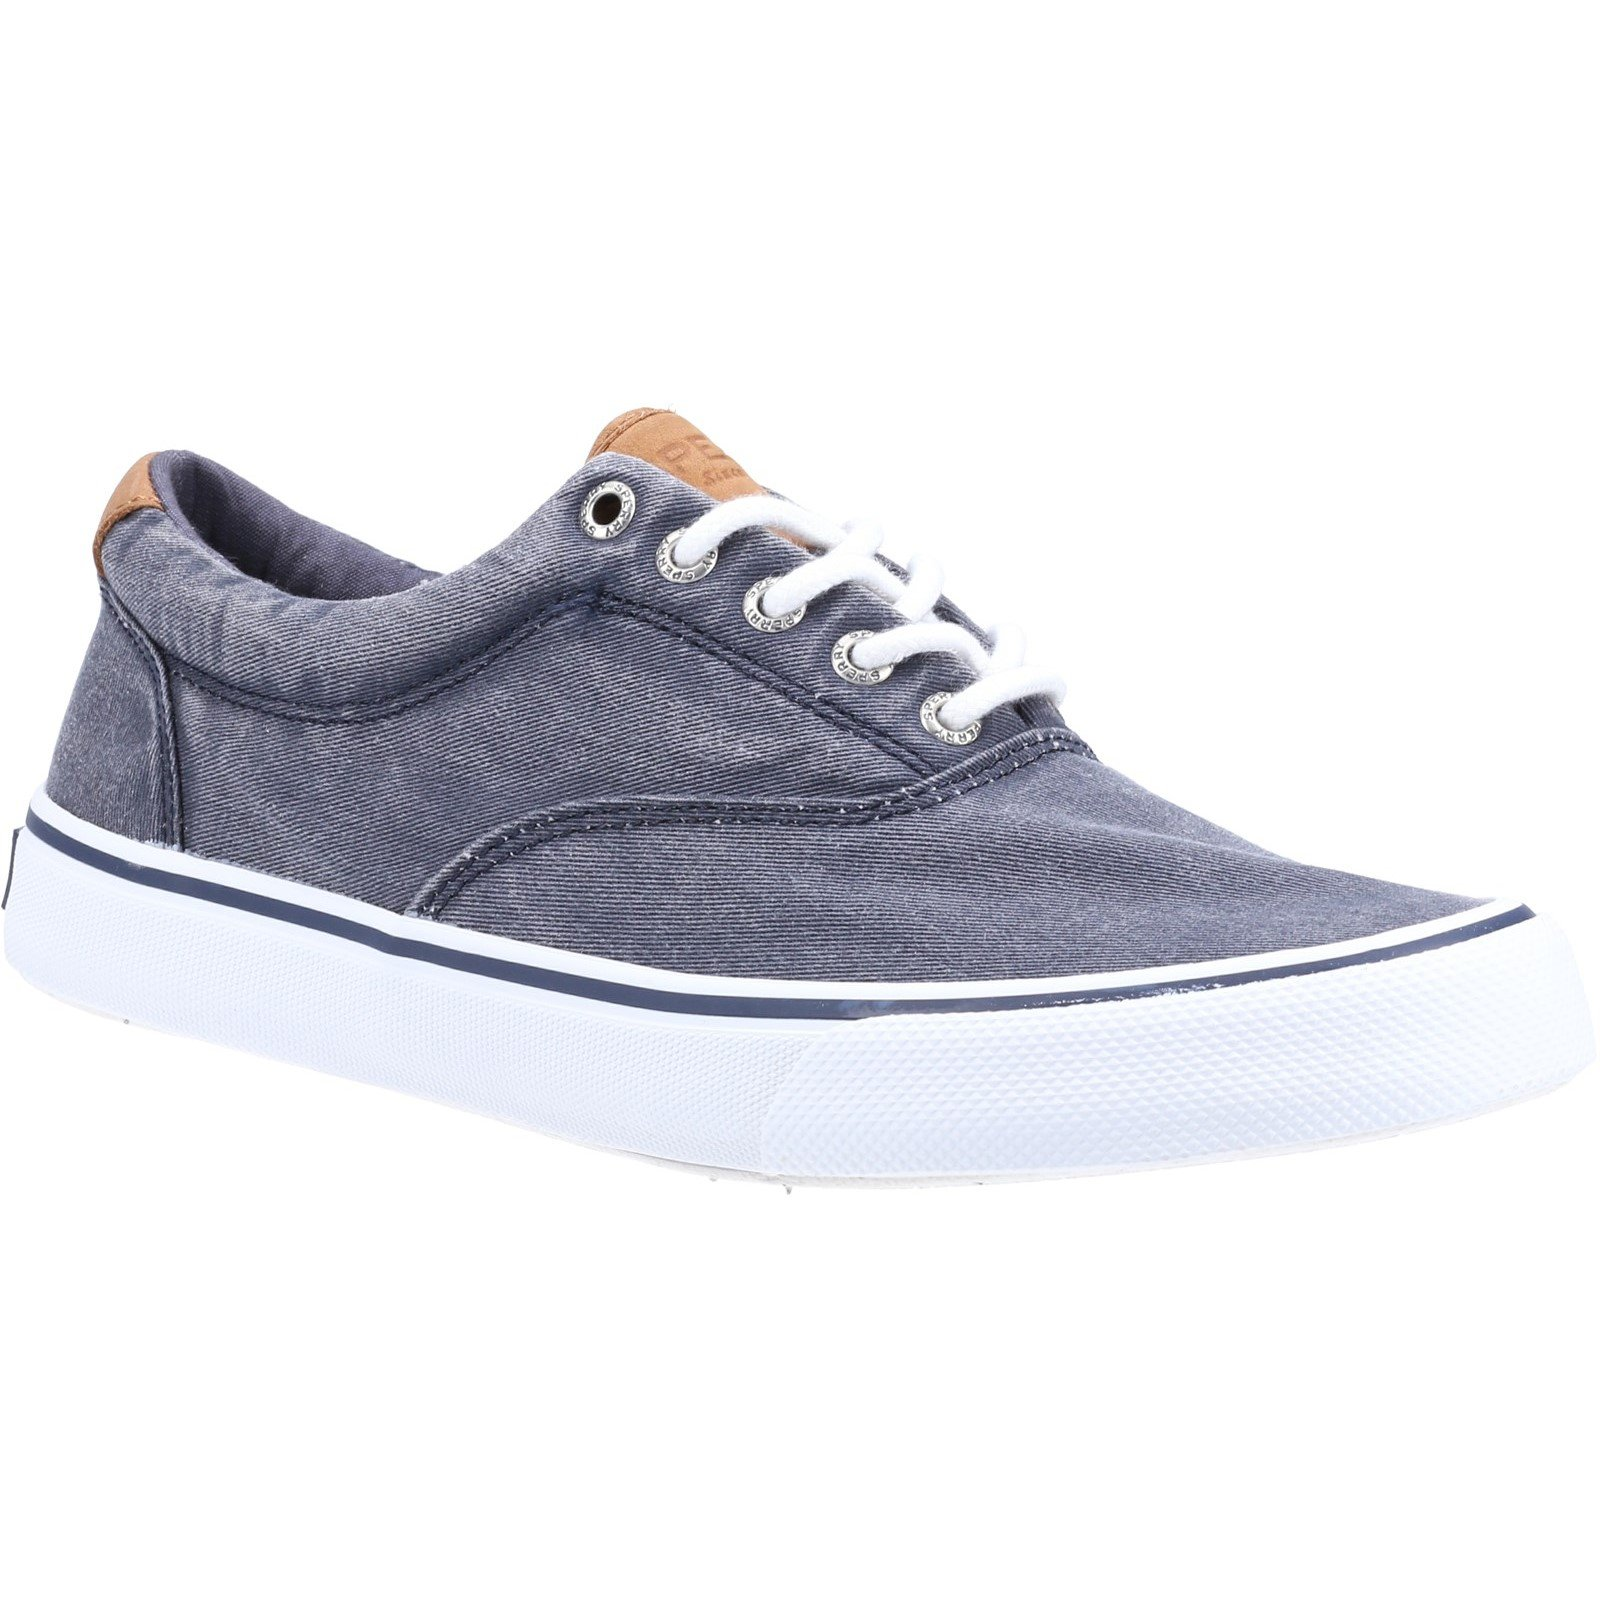 Sperry Men's Striper II CVO Canvas Trainers Various Colours 32397 - Salt Washed Navy 7